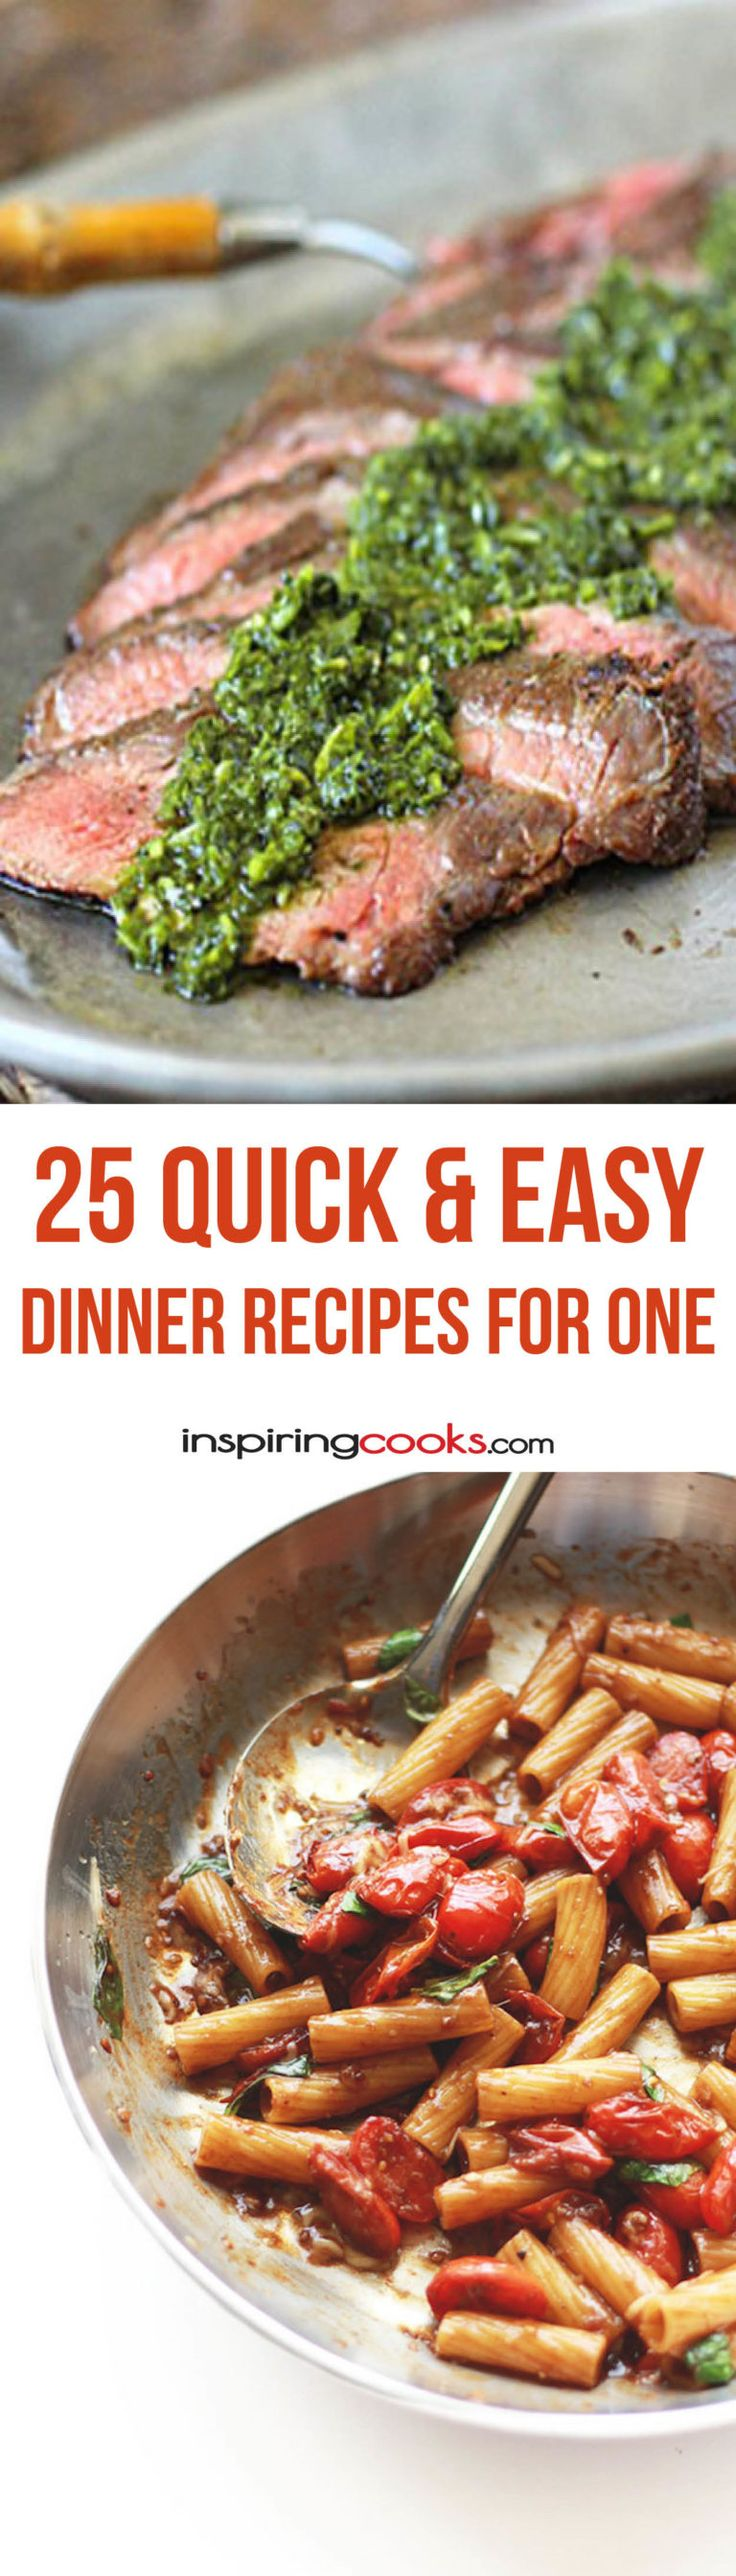 25 Quick & Easy Dinner Recipes for One Person                                                                                                                                                                                 More